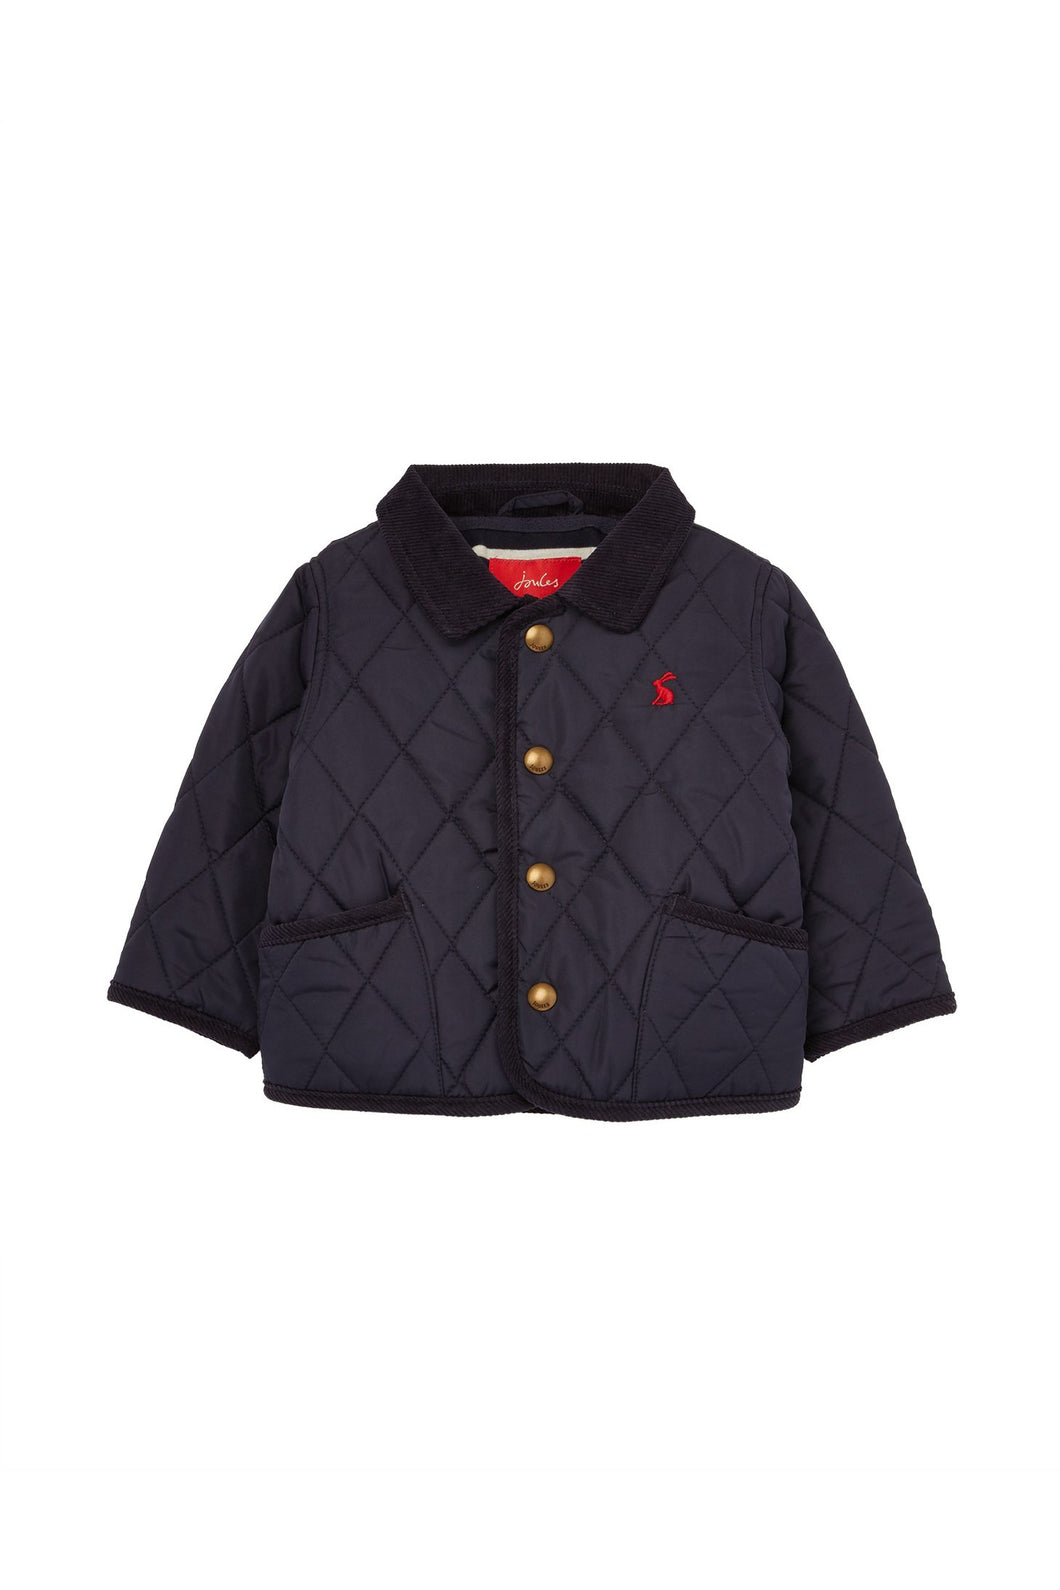 QUILTED BARN JACKET (VARIOUS COLORS)